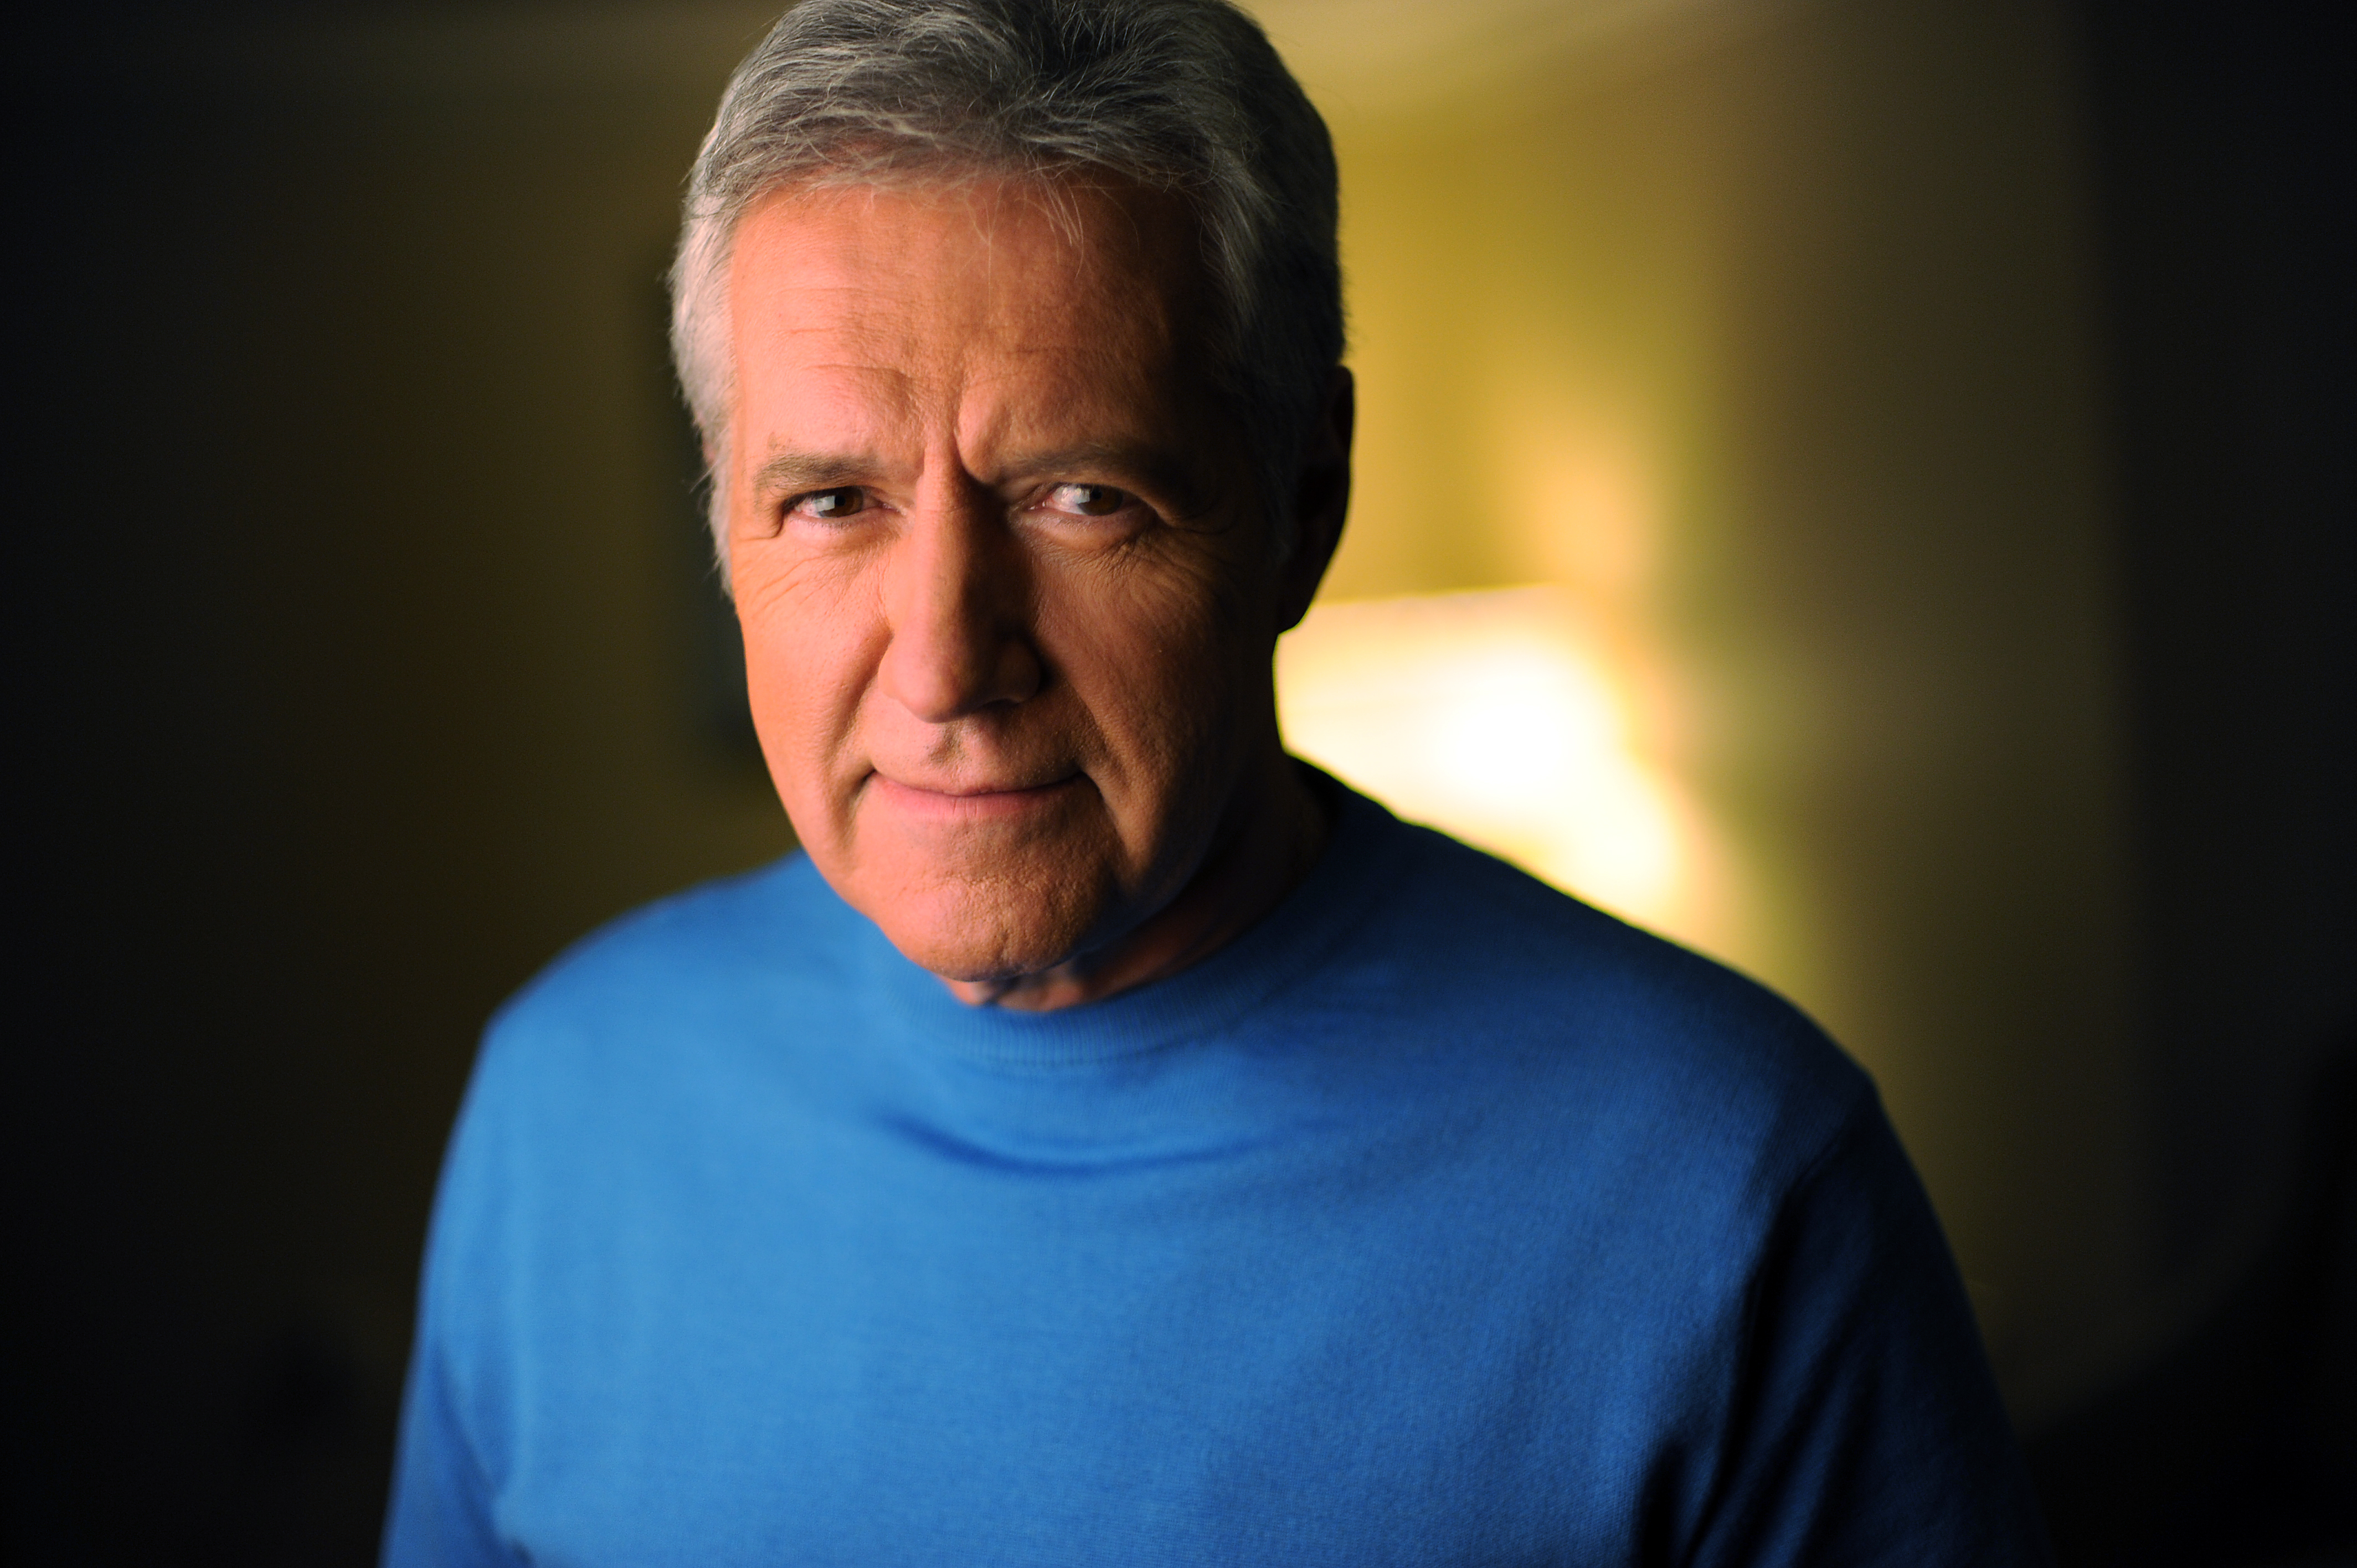 WASHINGTON, D.C., APRIL 17, 2012: Canadian American television star Alex Trebek has been the host of the syndicated game show Jeopardy! since 1984.